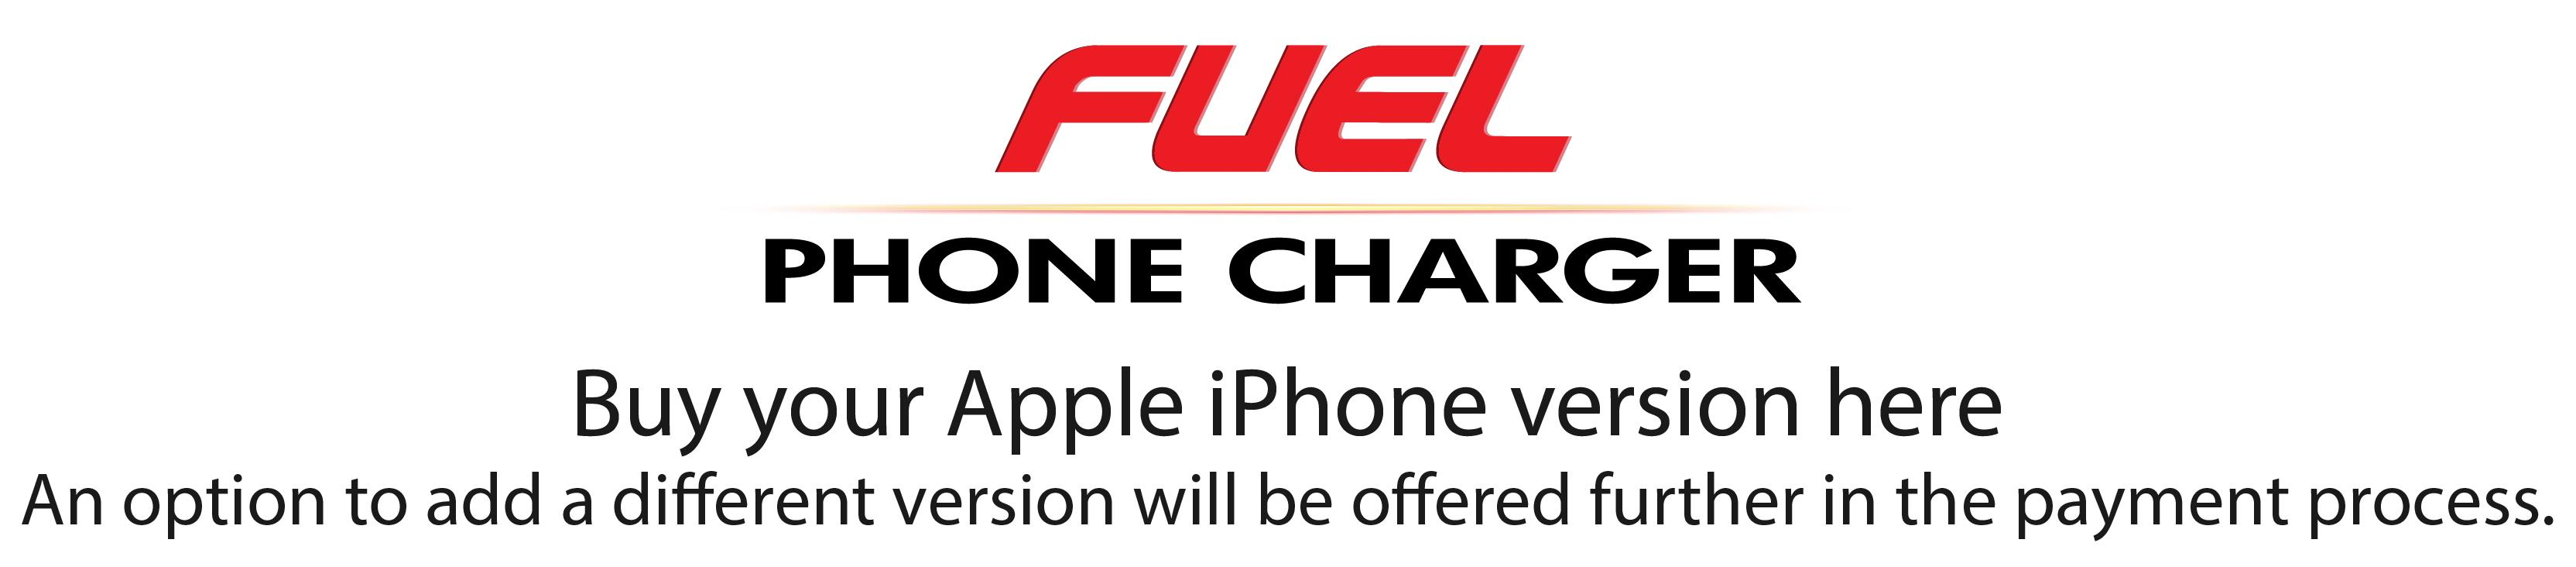 devotec fuel2 phonechargerforapple